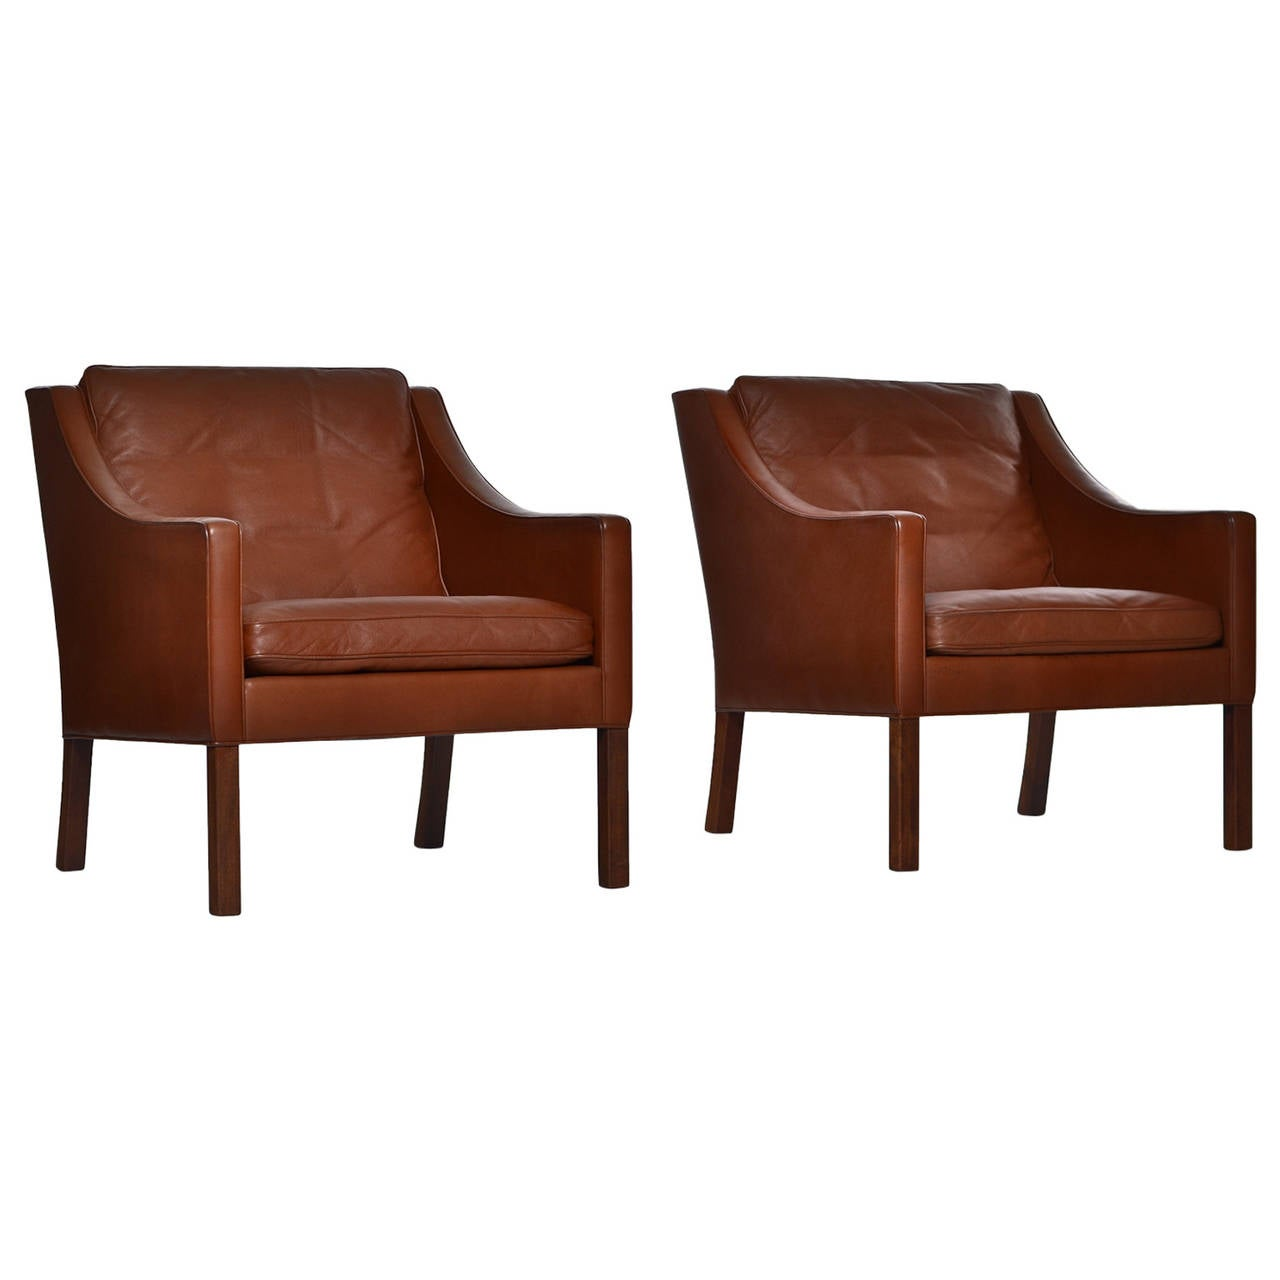 Of four chairs in oak and patinated cognac leather for sale at 1stdibs - Pair Of Cognac Leather B Rge Mogensen Lounge Chairs 1